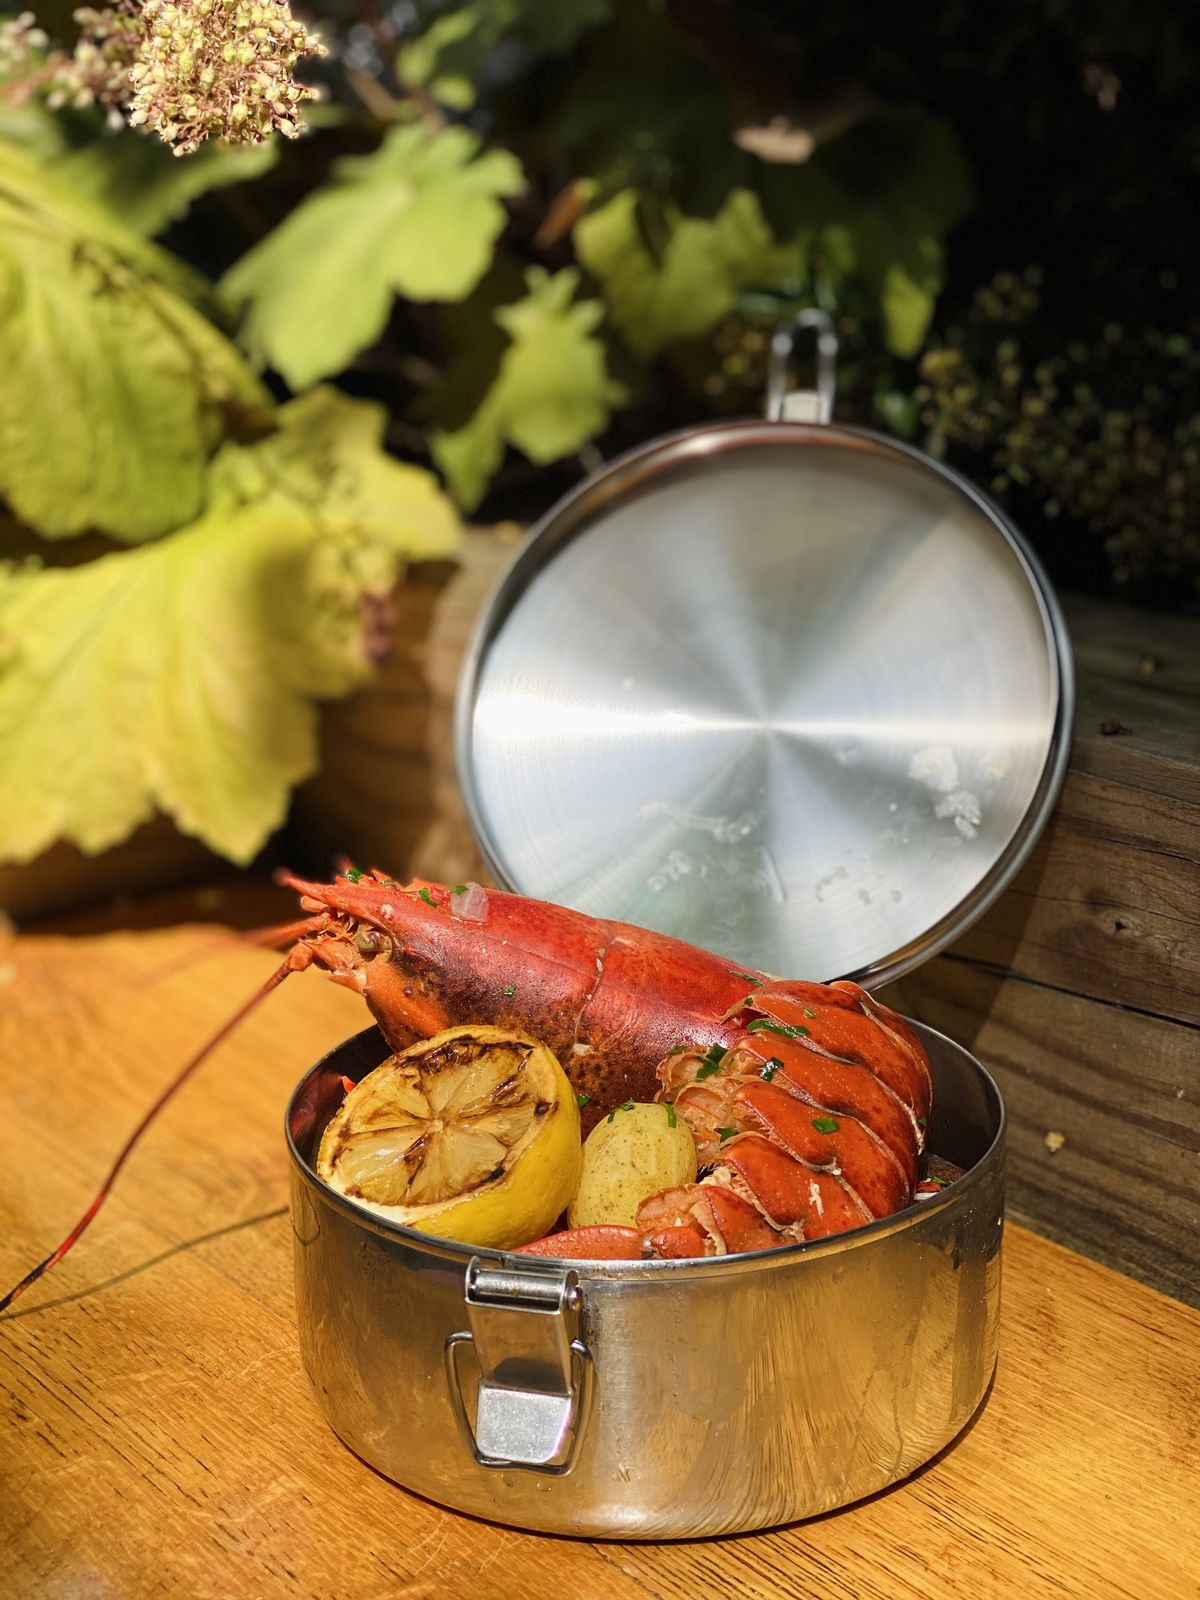 A lobster boil special ($36) includes a 1 1/4-lb. lobster, Portuguese sausage, potatoes, and corn.